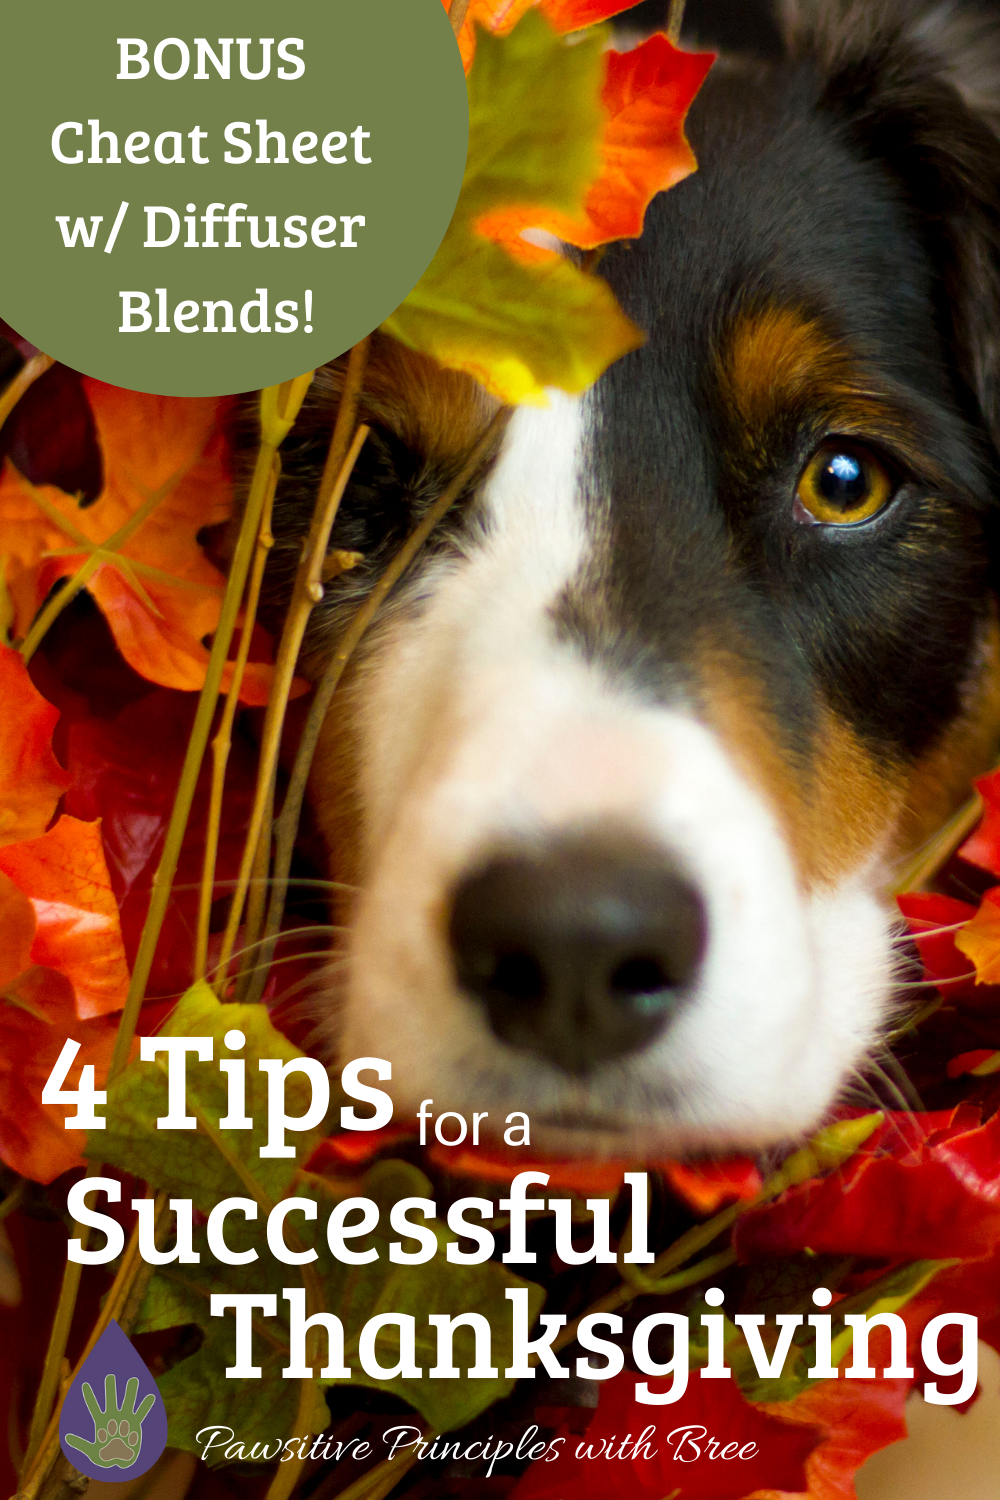 Thanksgiving Safety tips for your pup